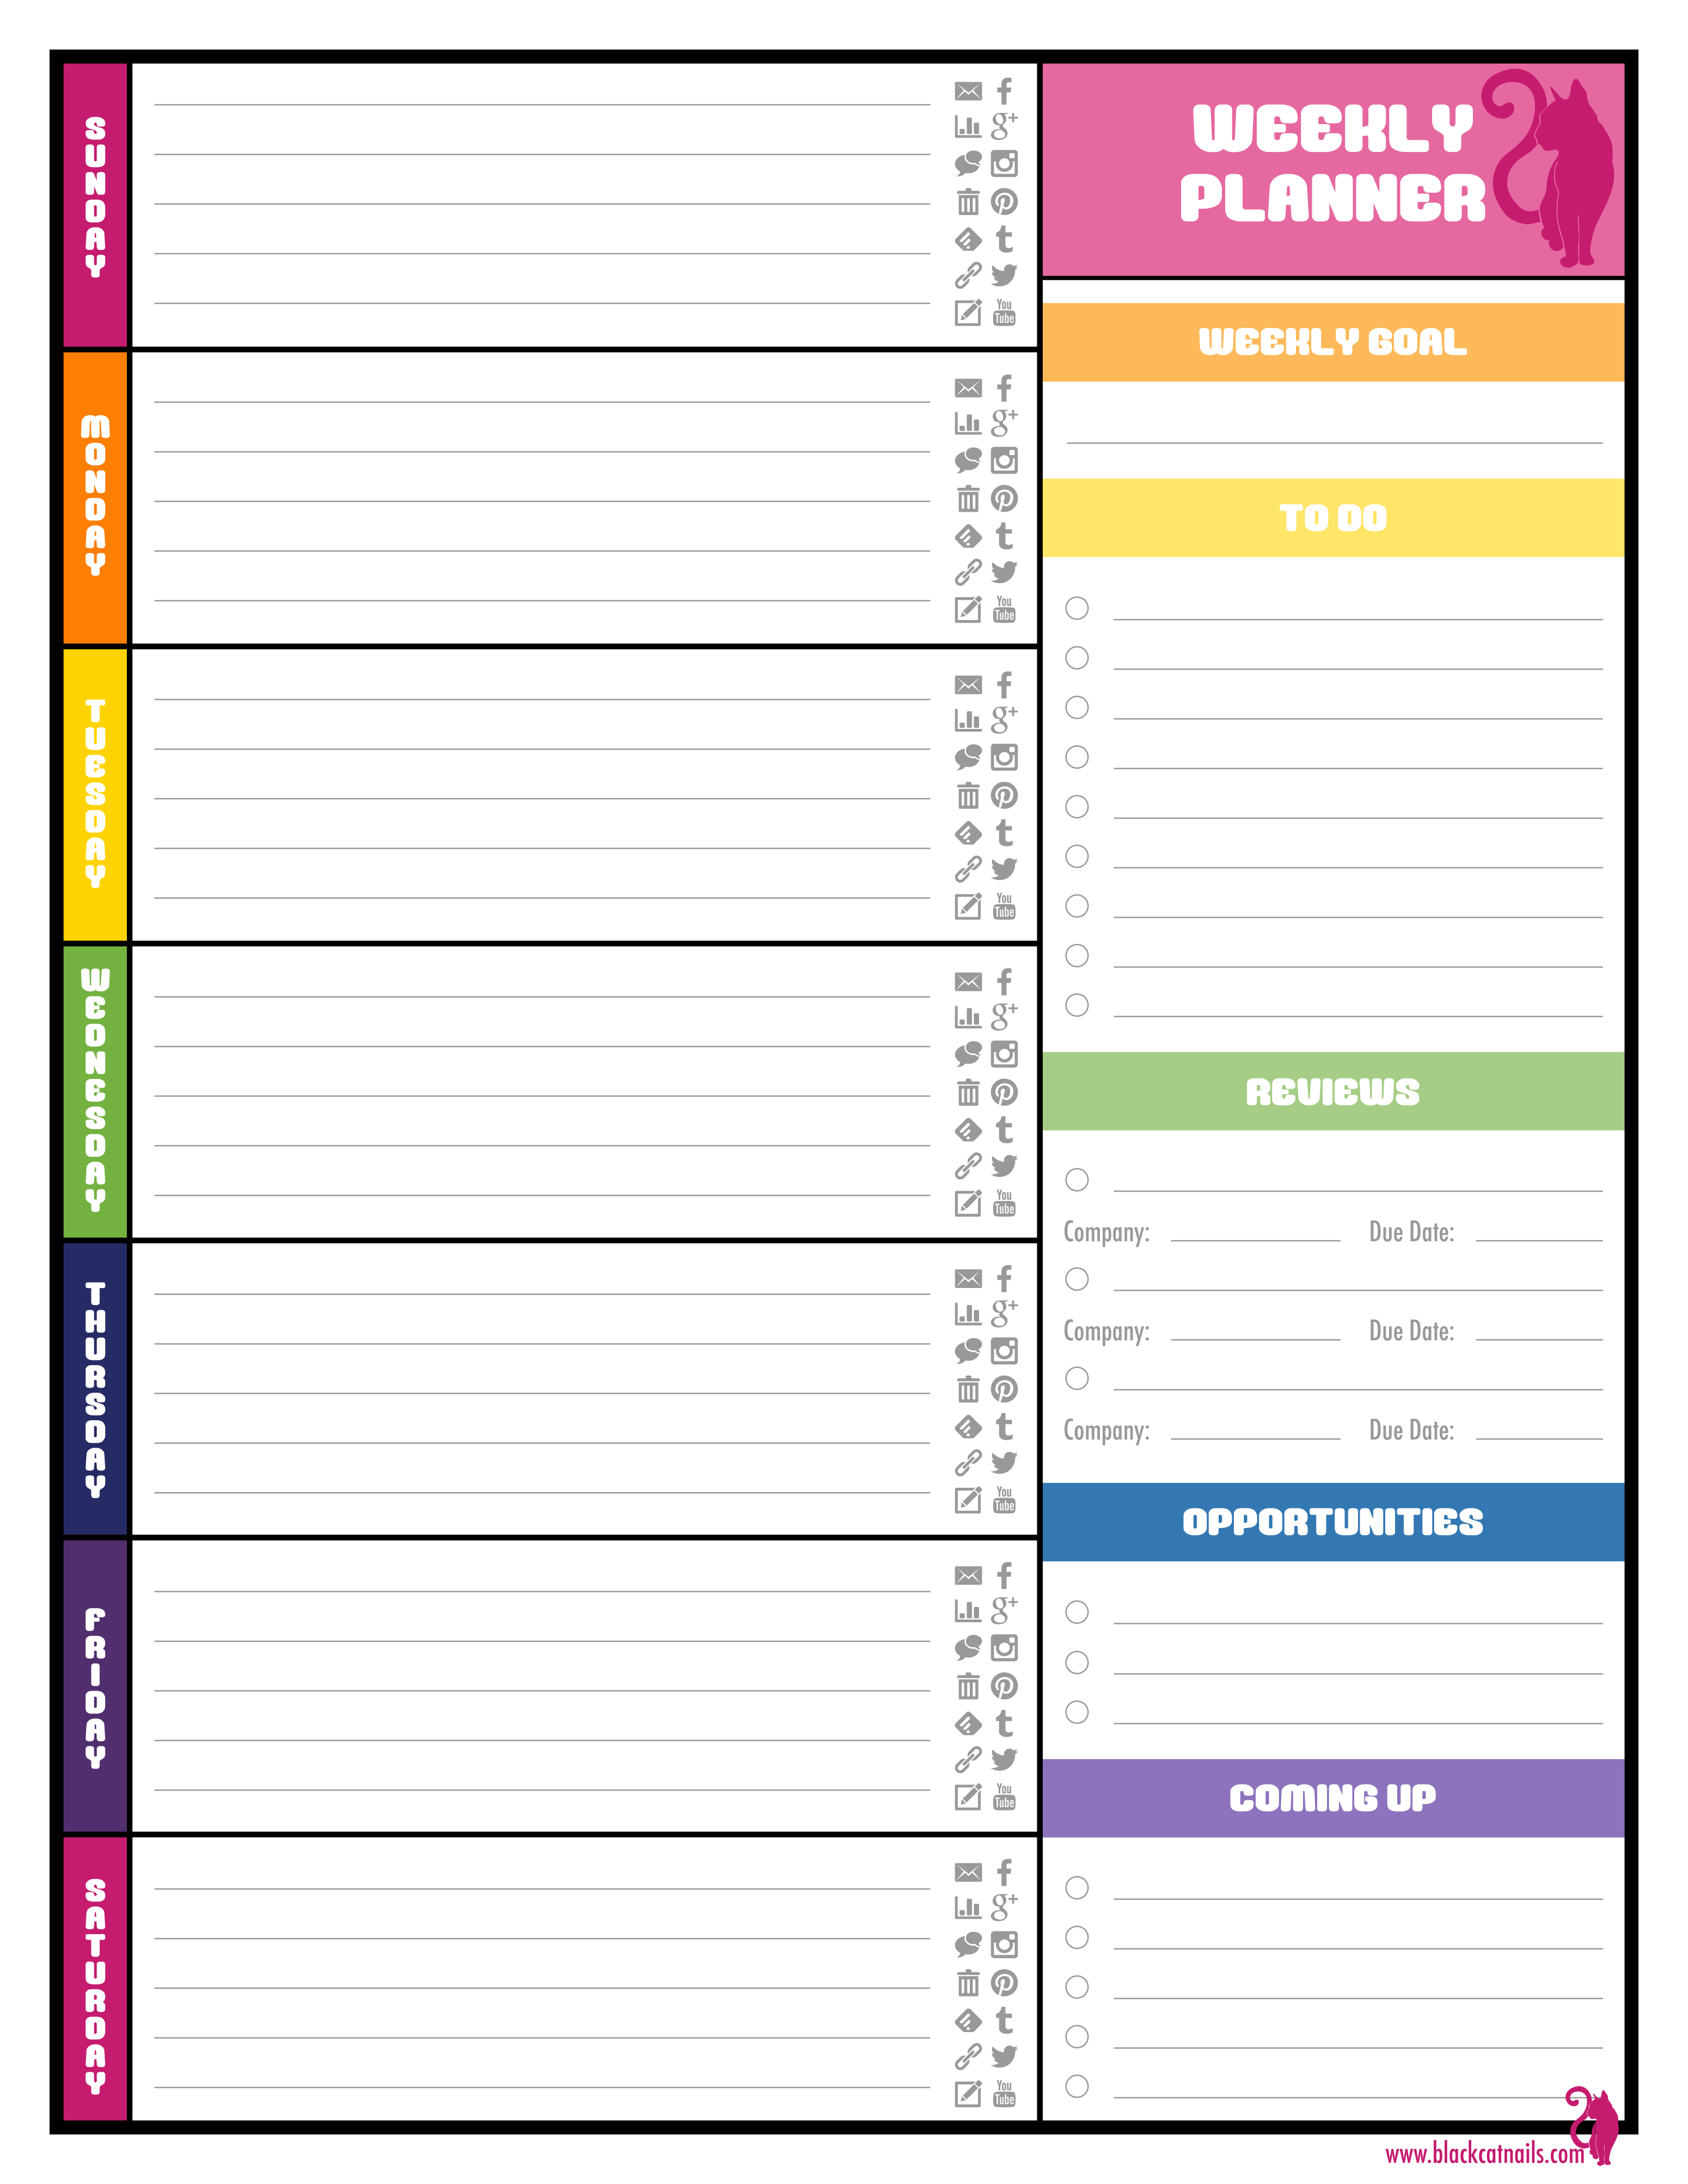 8 Images of Printable Weekly Planner Templates 2016